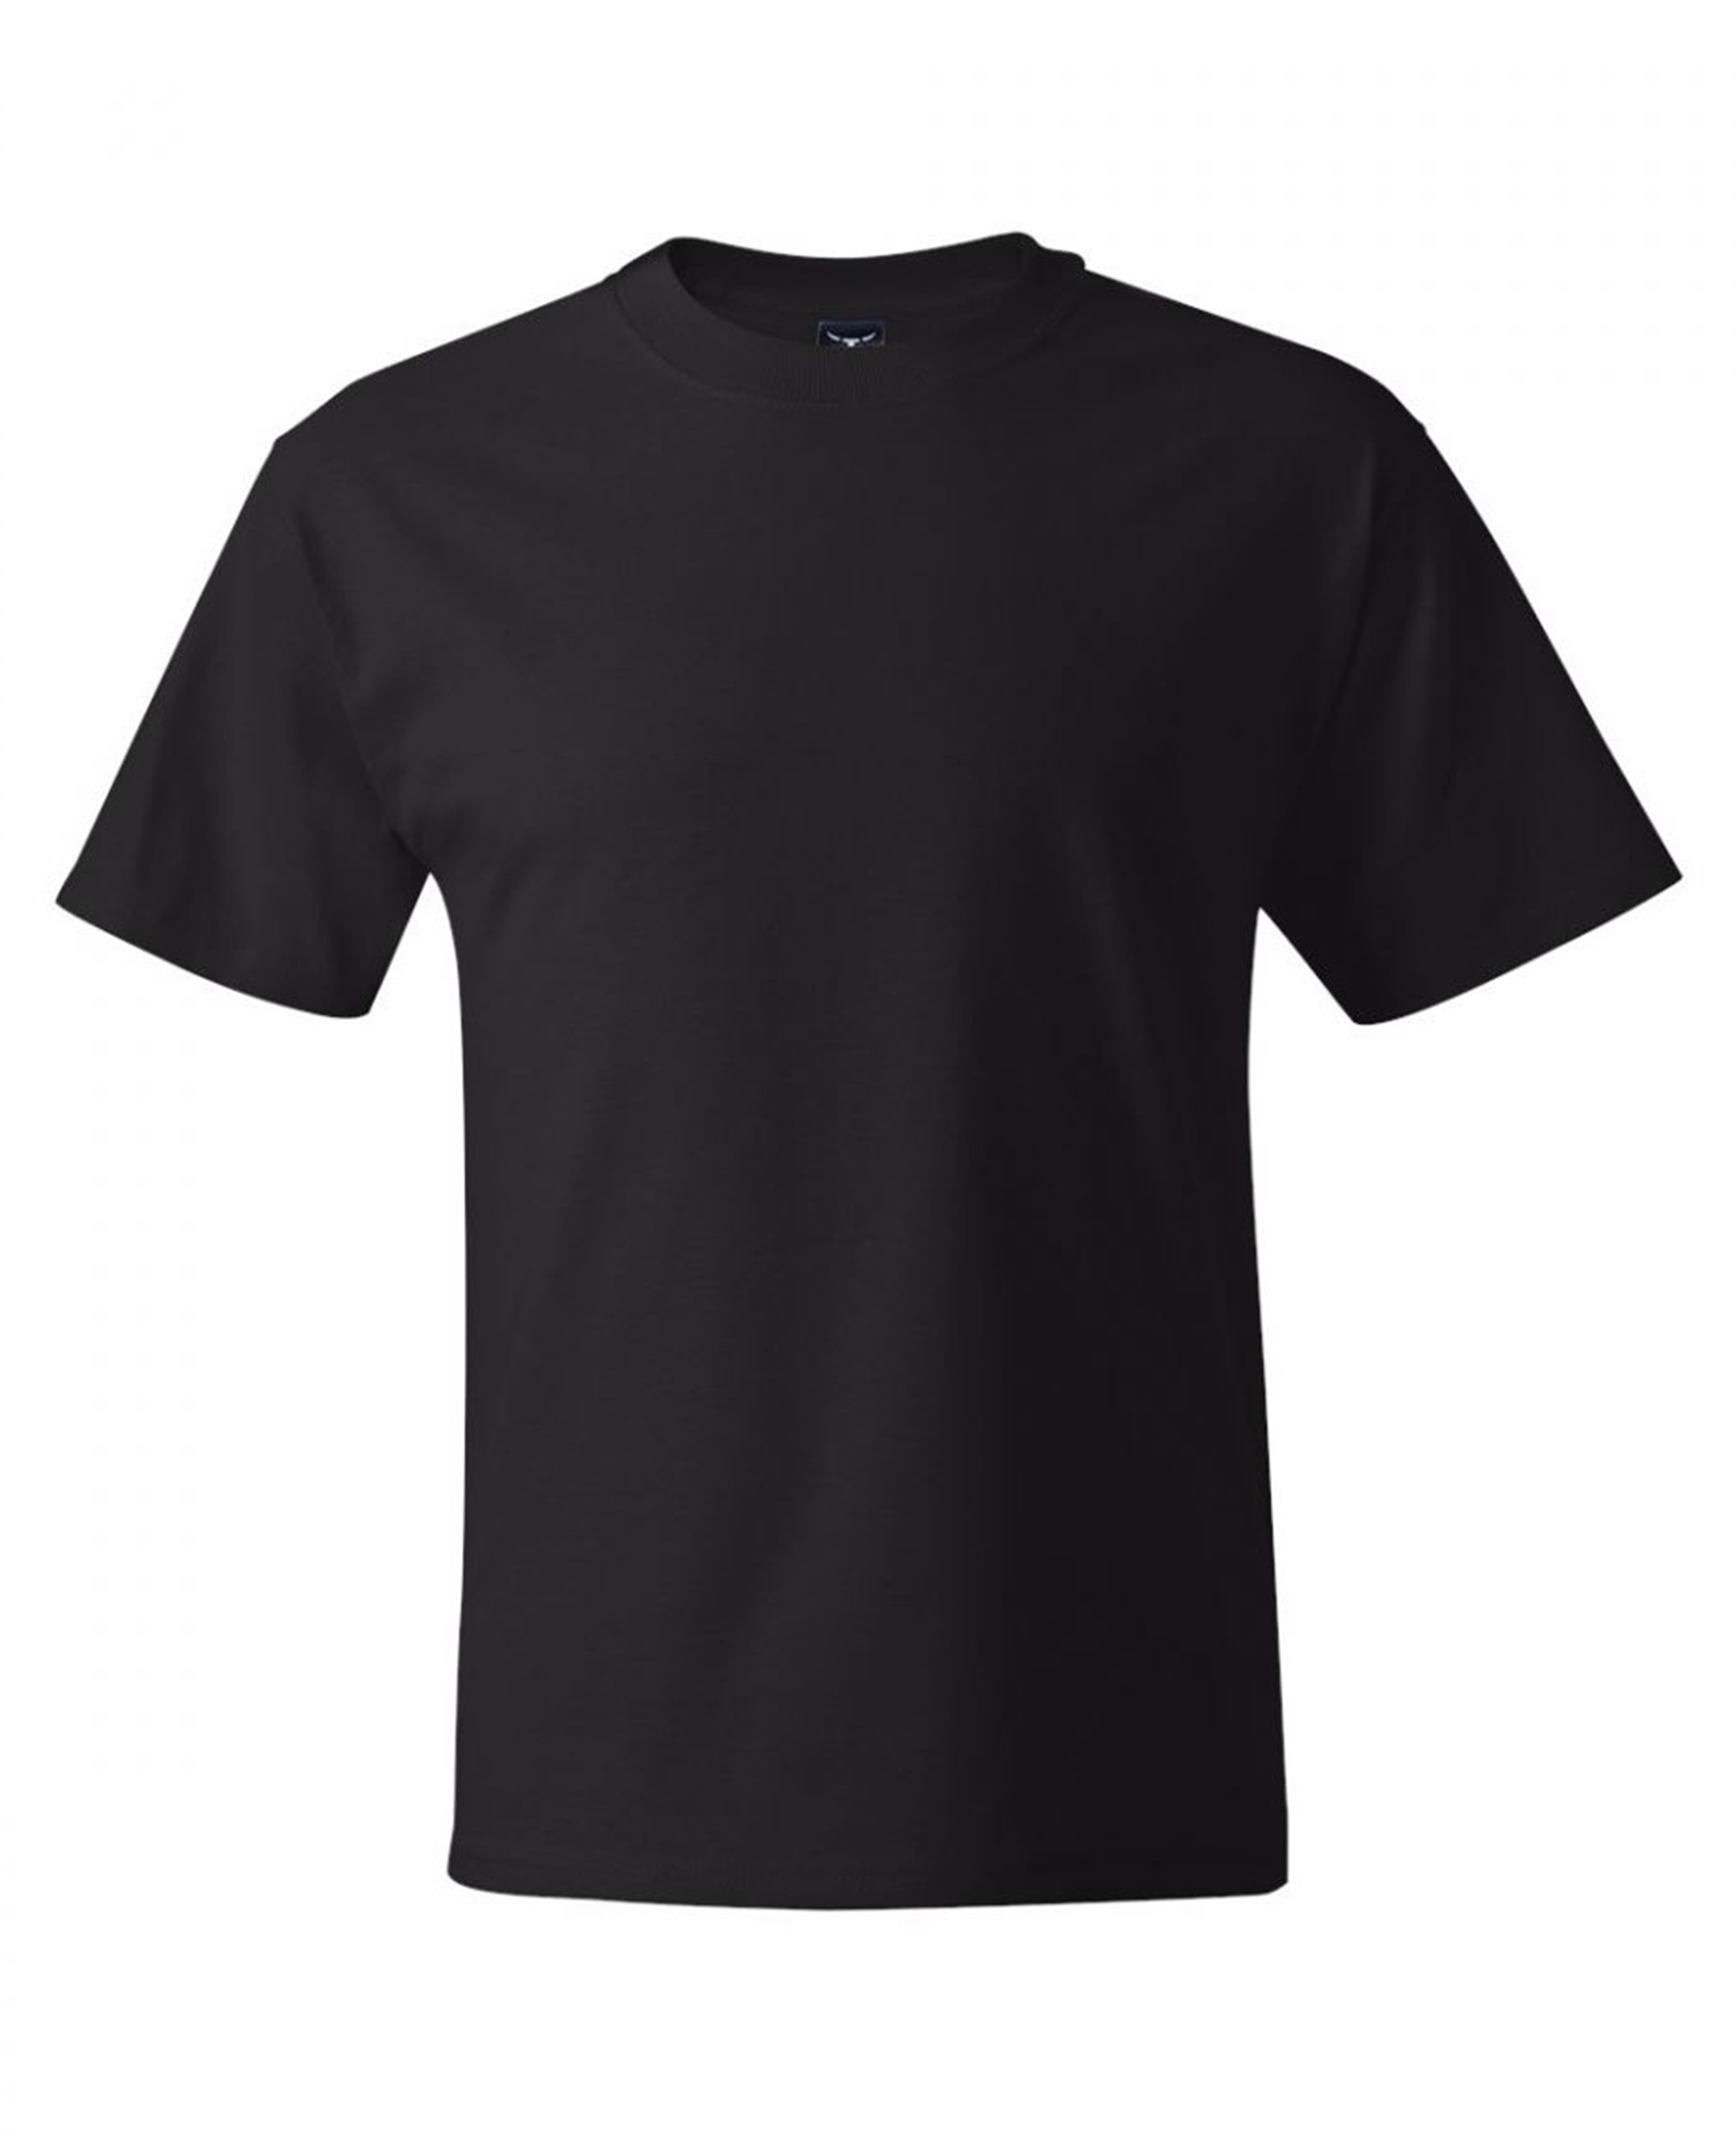 5 pack Beefy Heavyweight T-shirt - T-Shirts - Hanes - BRANMA